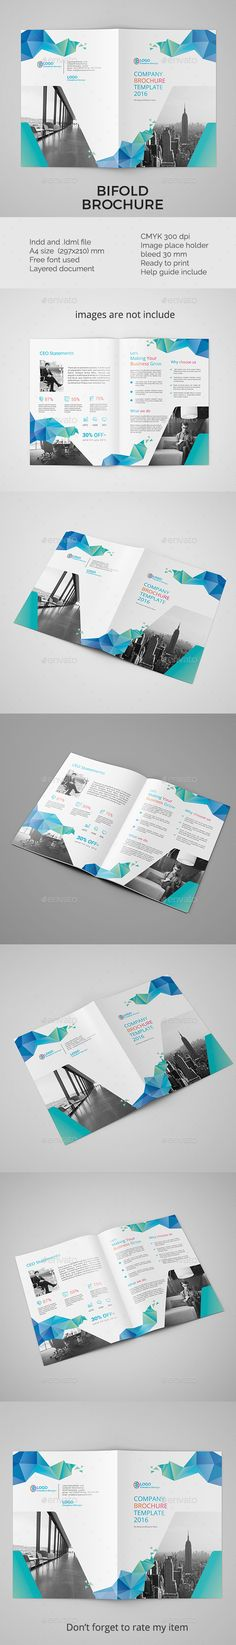 Corporate bifold brochure vol 5 - InDesign Template • Only available here ➝ https://graphicriver.net/item/corporate-bifold-brochure-vol-5/16936951?ref=pxcr